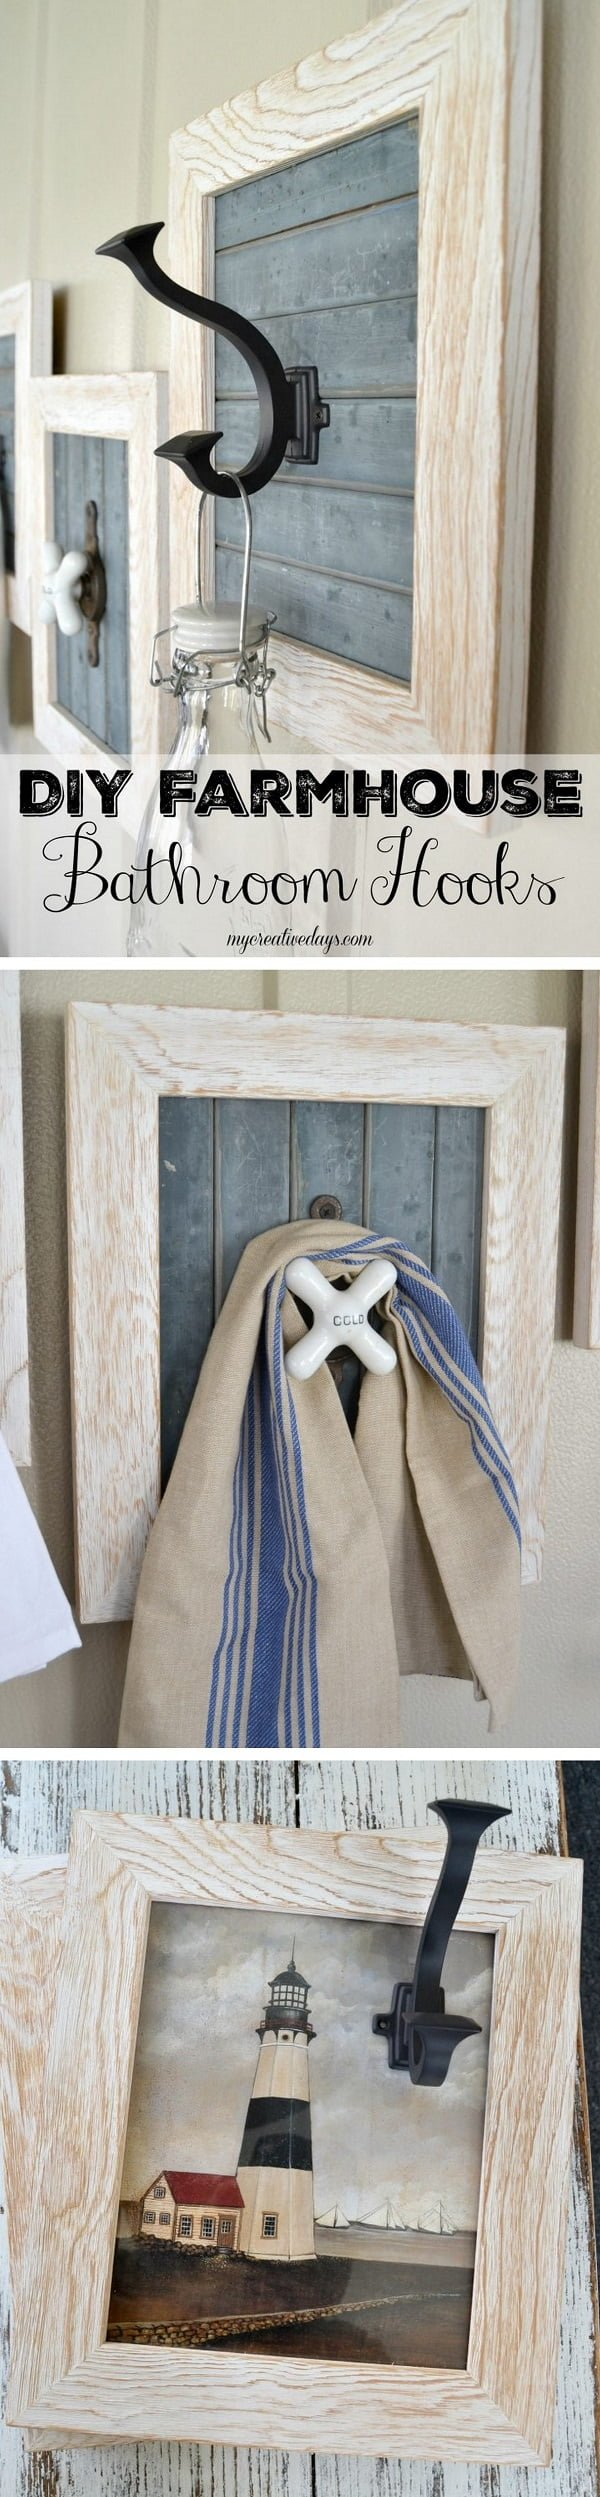 Check out how to make your own DIY farmhouse style bathroom hooks